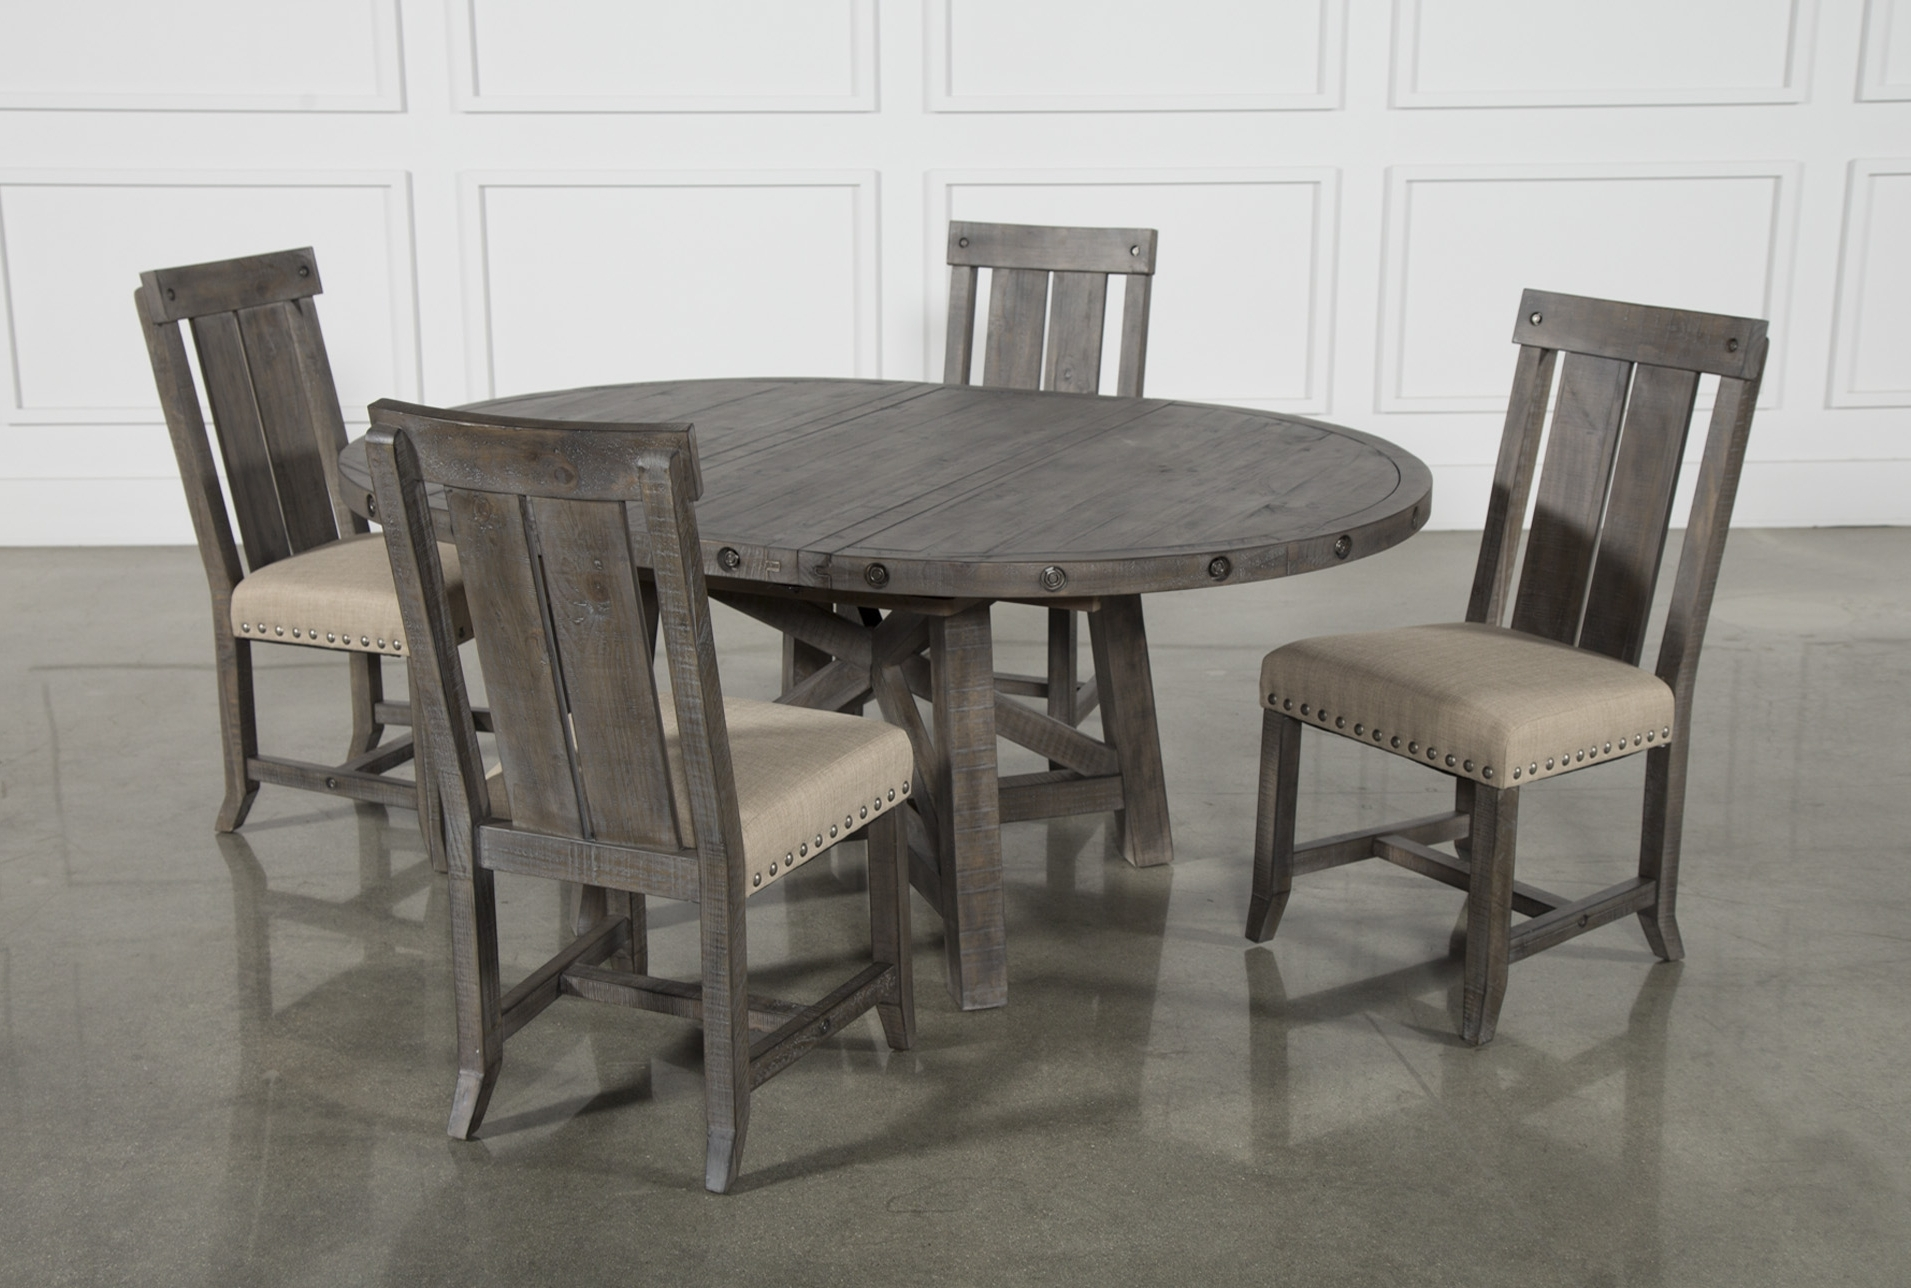 Jaxon 5 Piece Extension Round Dining Sets With Wood Chairs With Regard To Most Up To Date Jaxon Grey 5 Piece Round Extension Dining Set W/wood Chairs (Gallery 6 of 25)